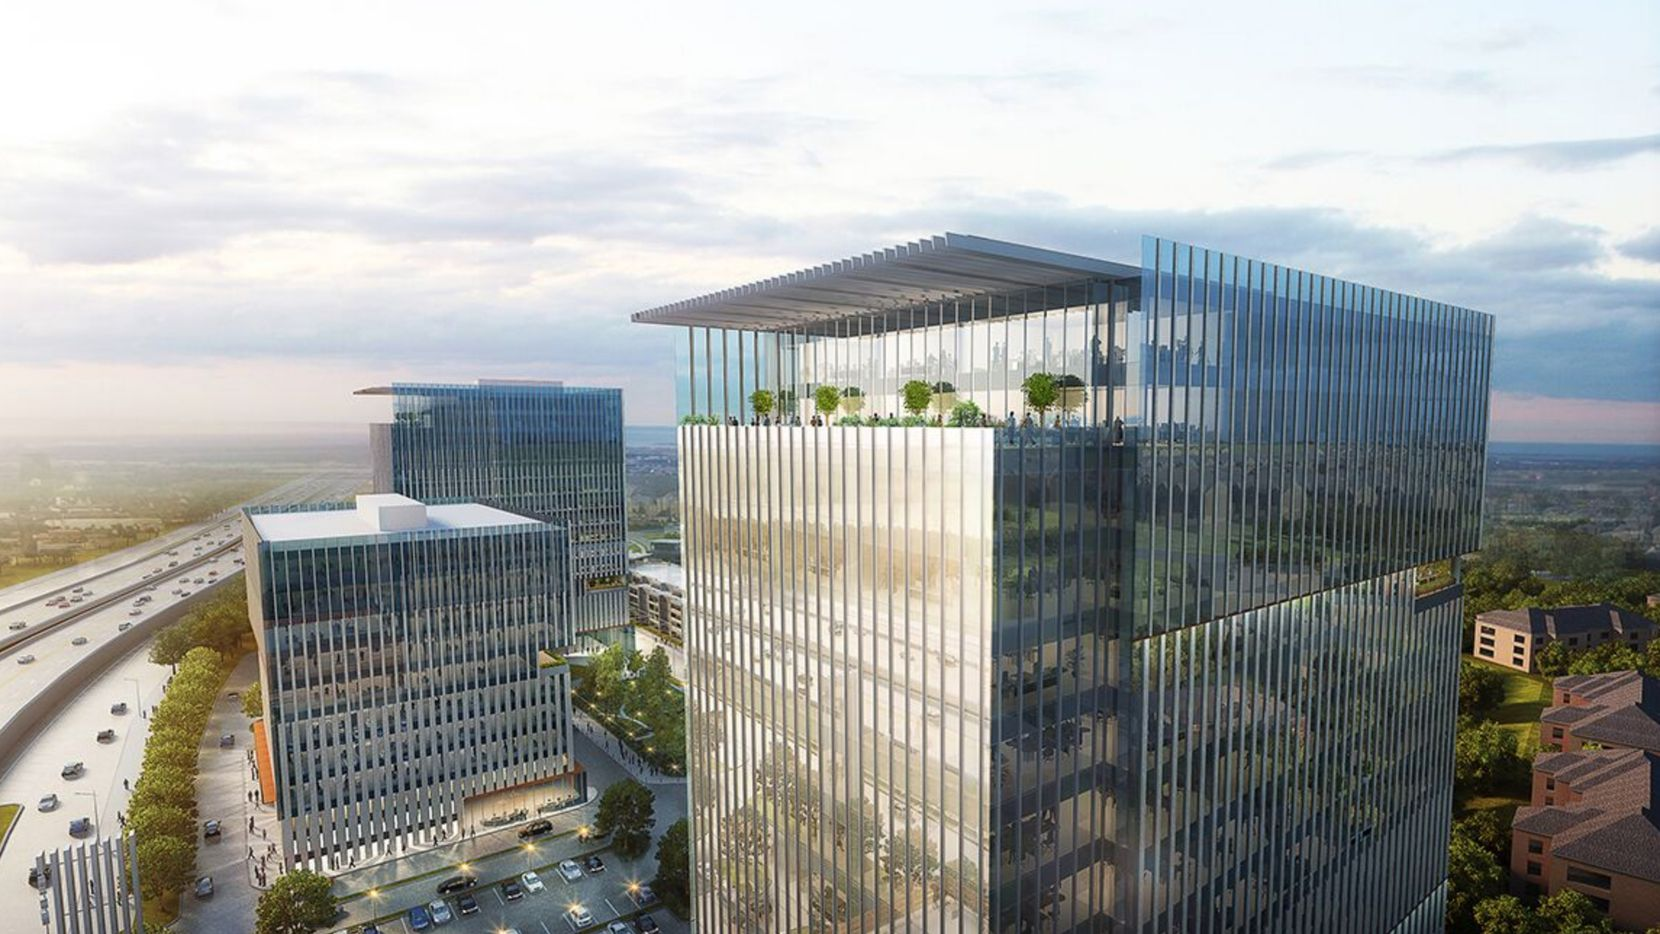 The Auspire office campus, shown in a rendering, is part of the 40-acre Gate development on the Dallas North Tollway.